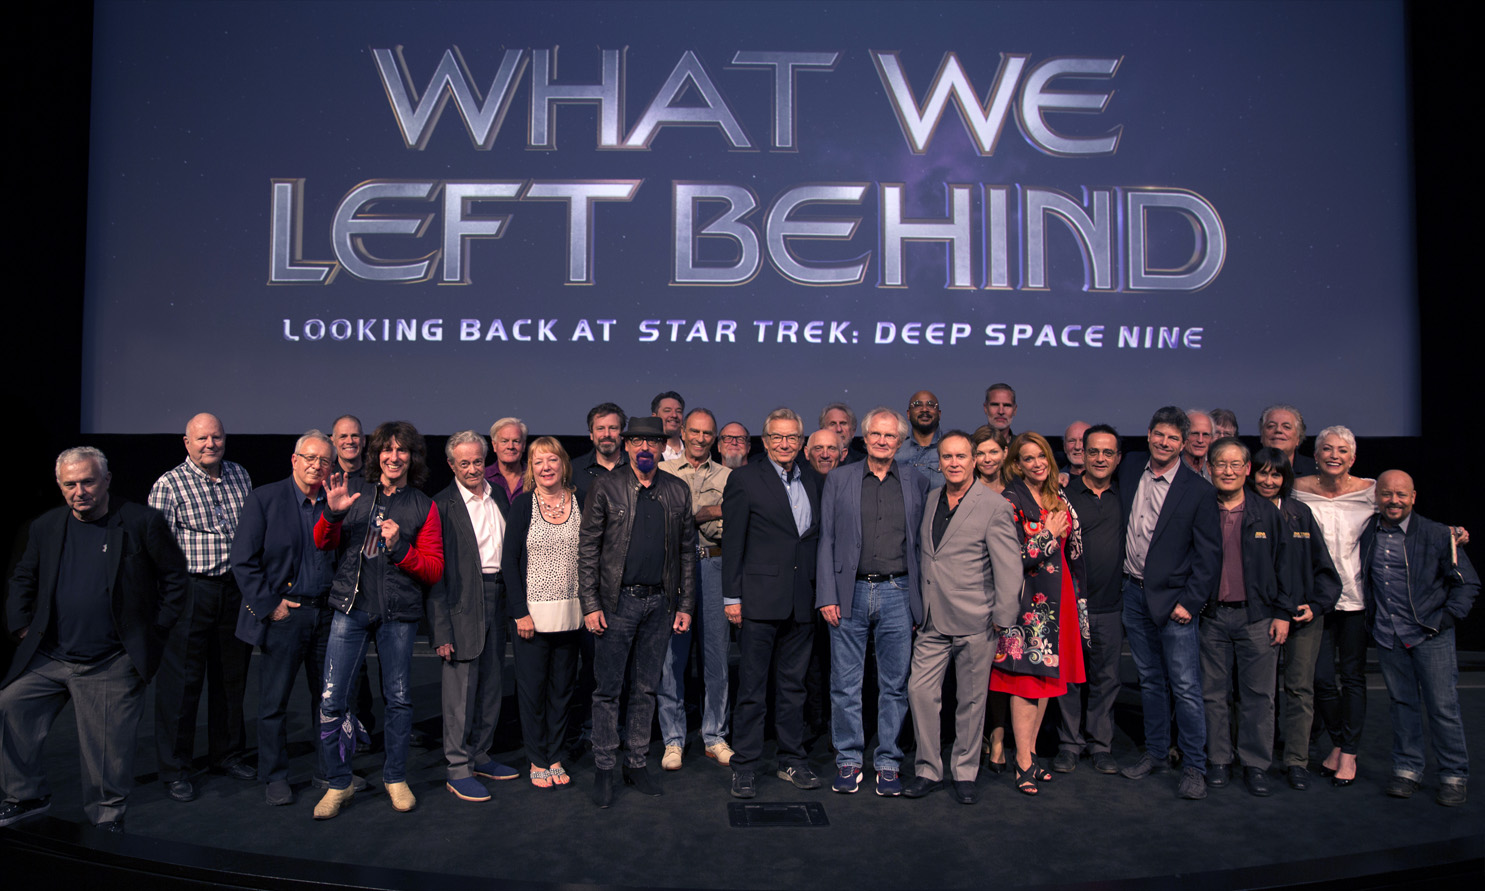 Shout! Studios Acquires Worldwide Rights To WHAT WE LEFT BEHIND:  LOOKING BACK AT STAR TREK: DEEP SPACE NINE